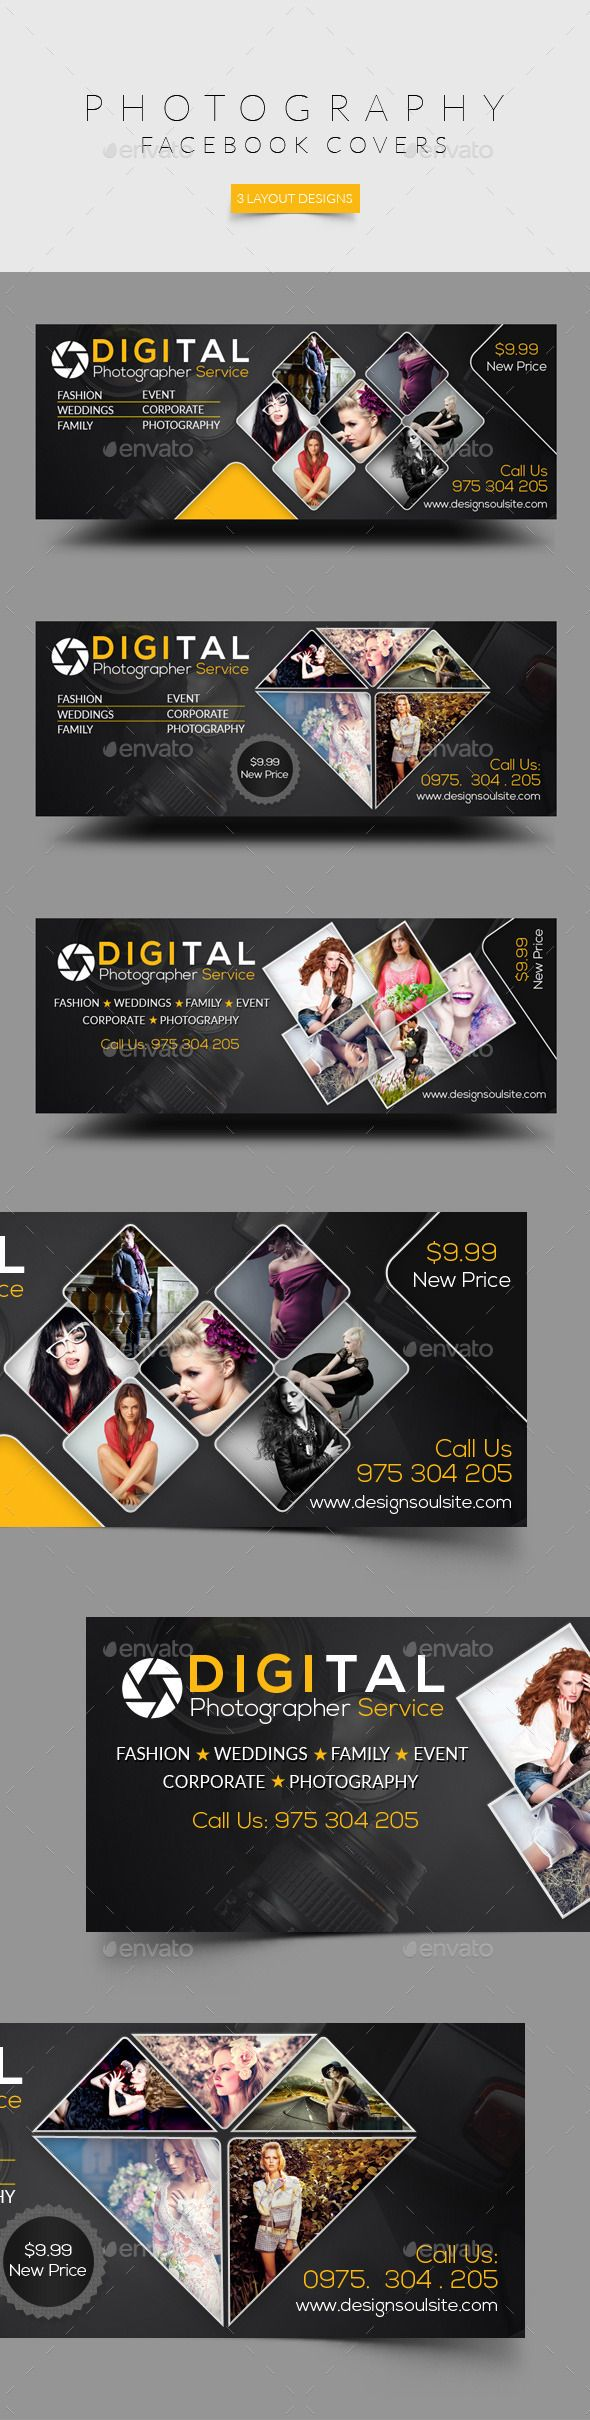 Photography Facebook Cover — Photoshop PSD #metro design #studio • Download here → https://graphicriver.net/item/photography-facebook-cover/12417673?ref=pxcr